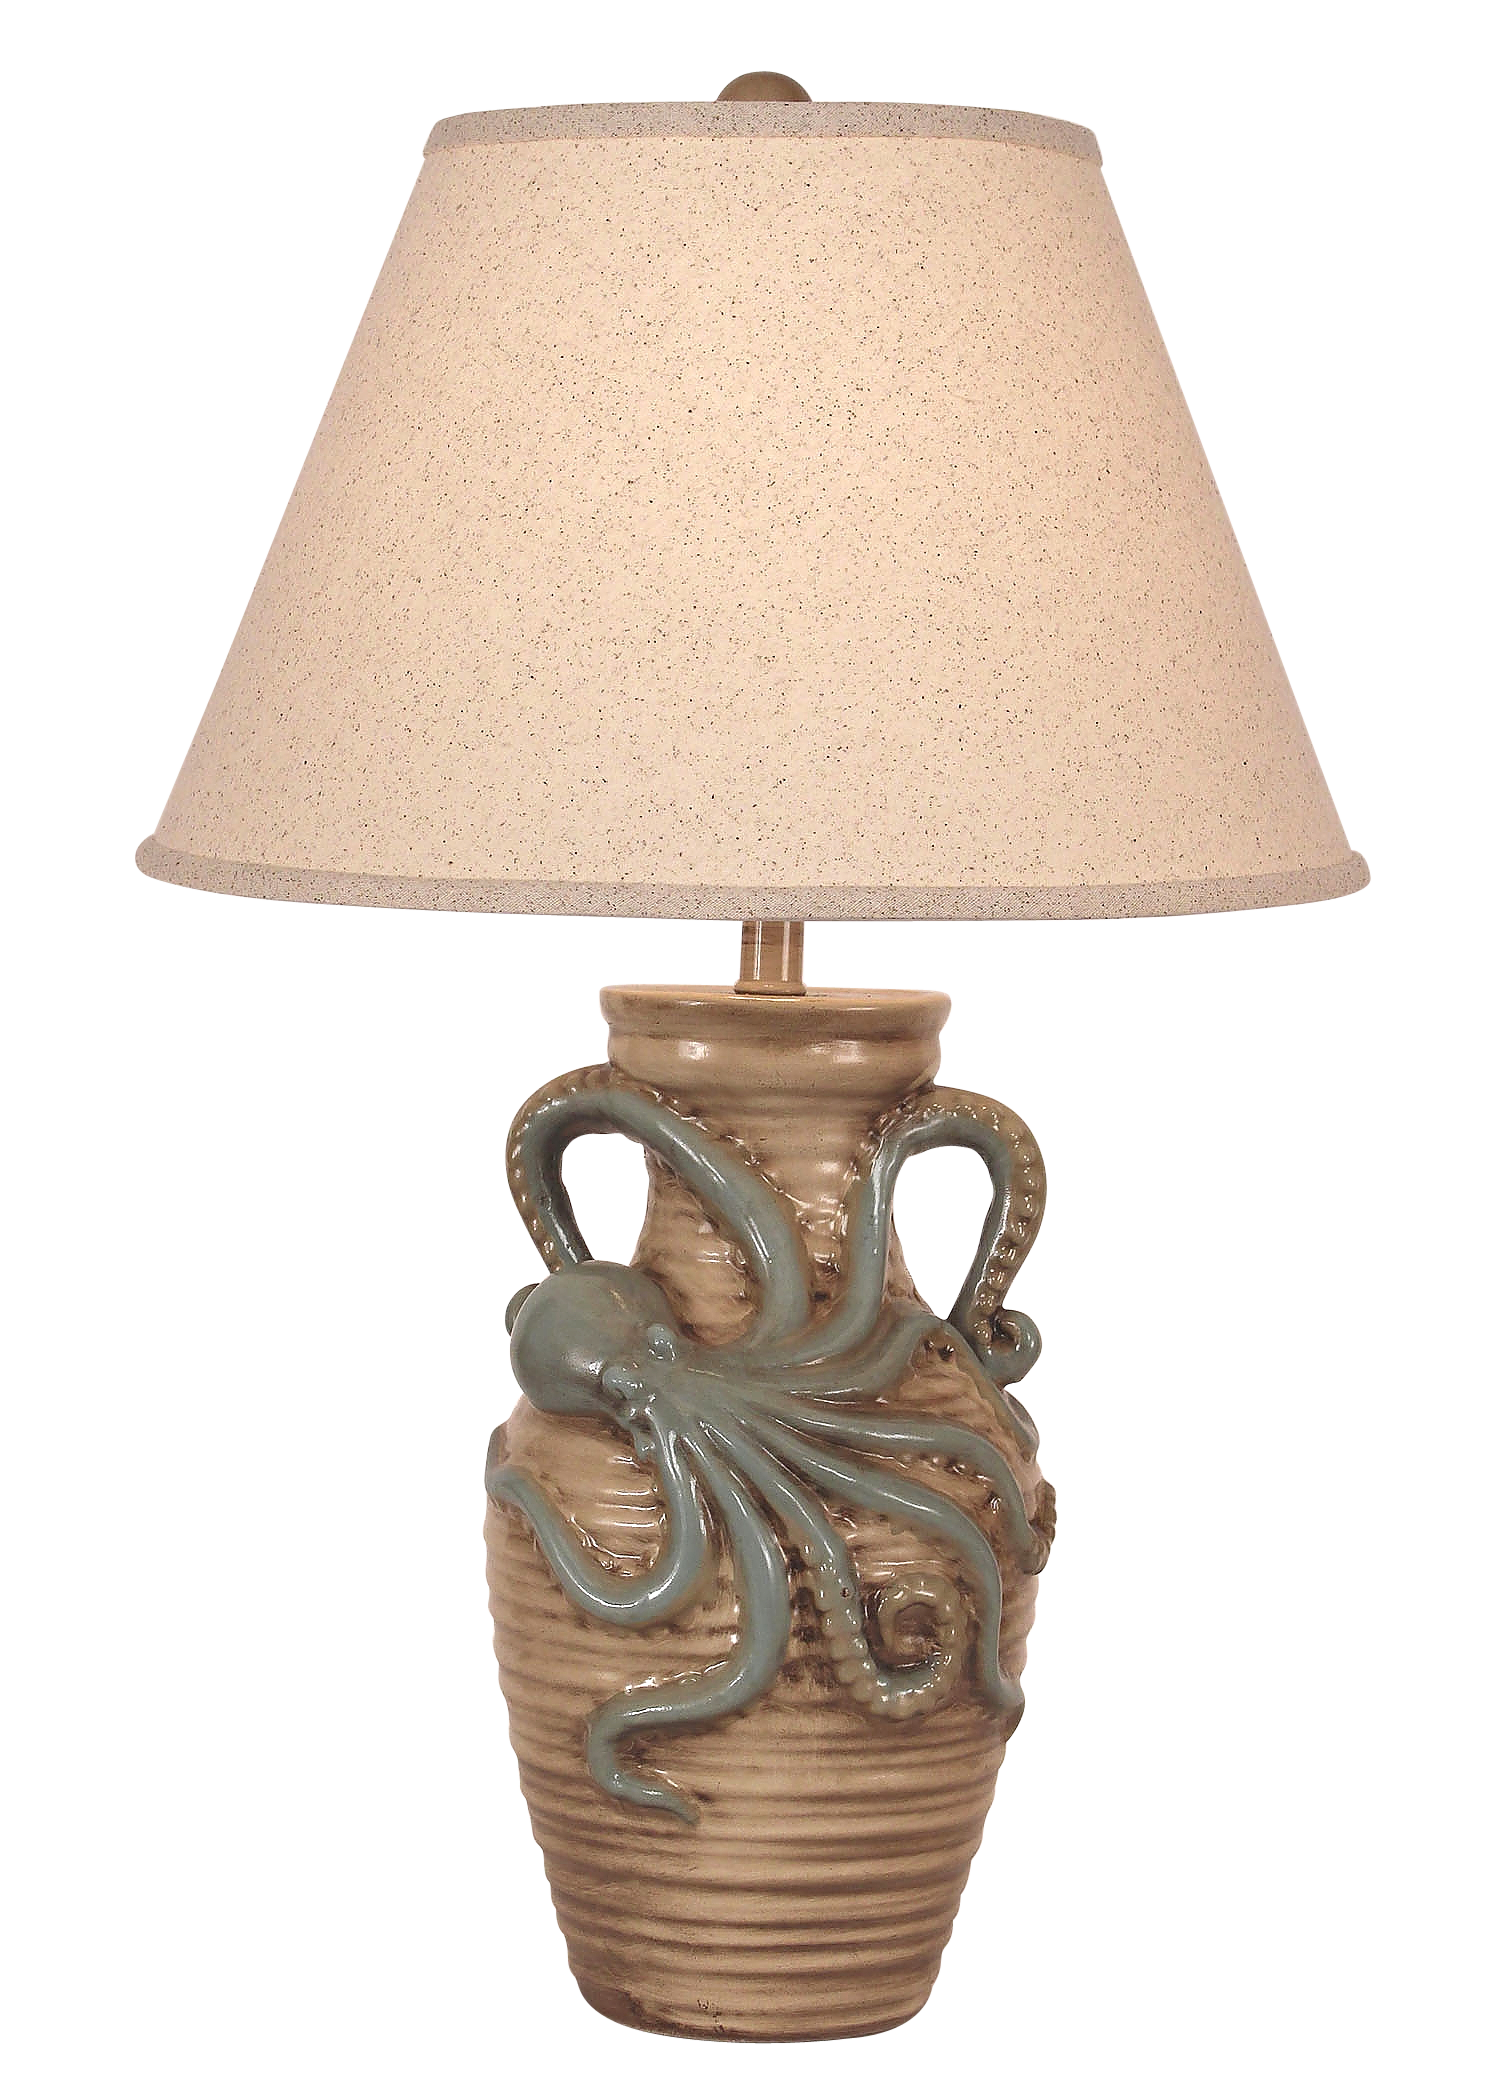 Cottage/Harbor Octopus Table Lamp - Coast Lamp Shop